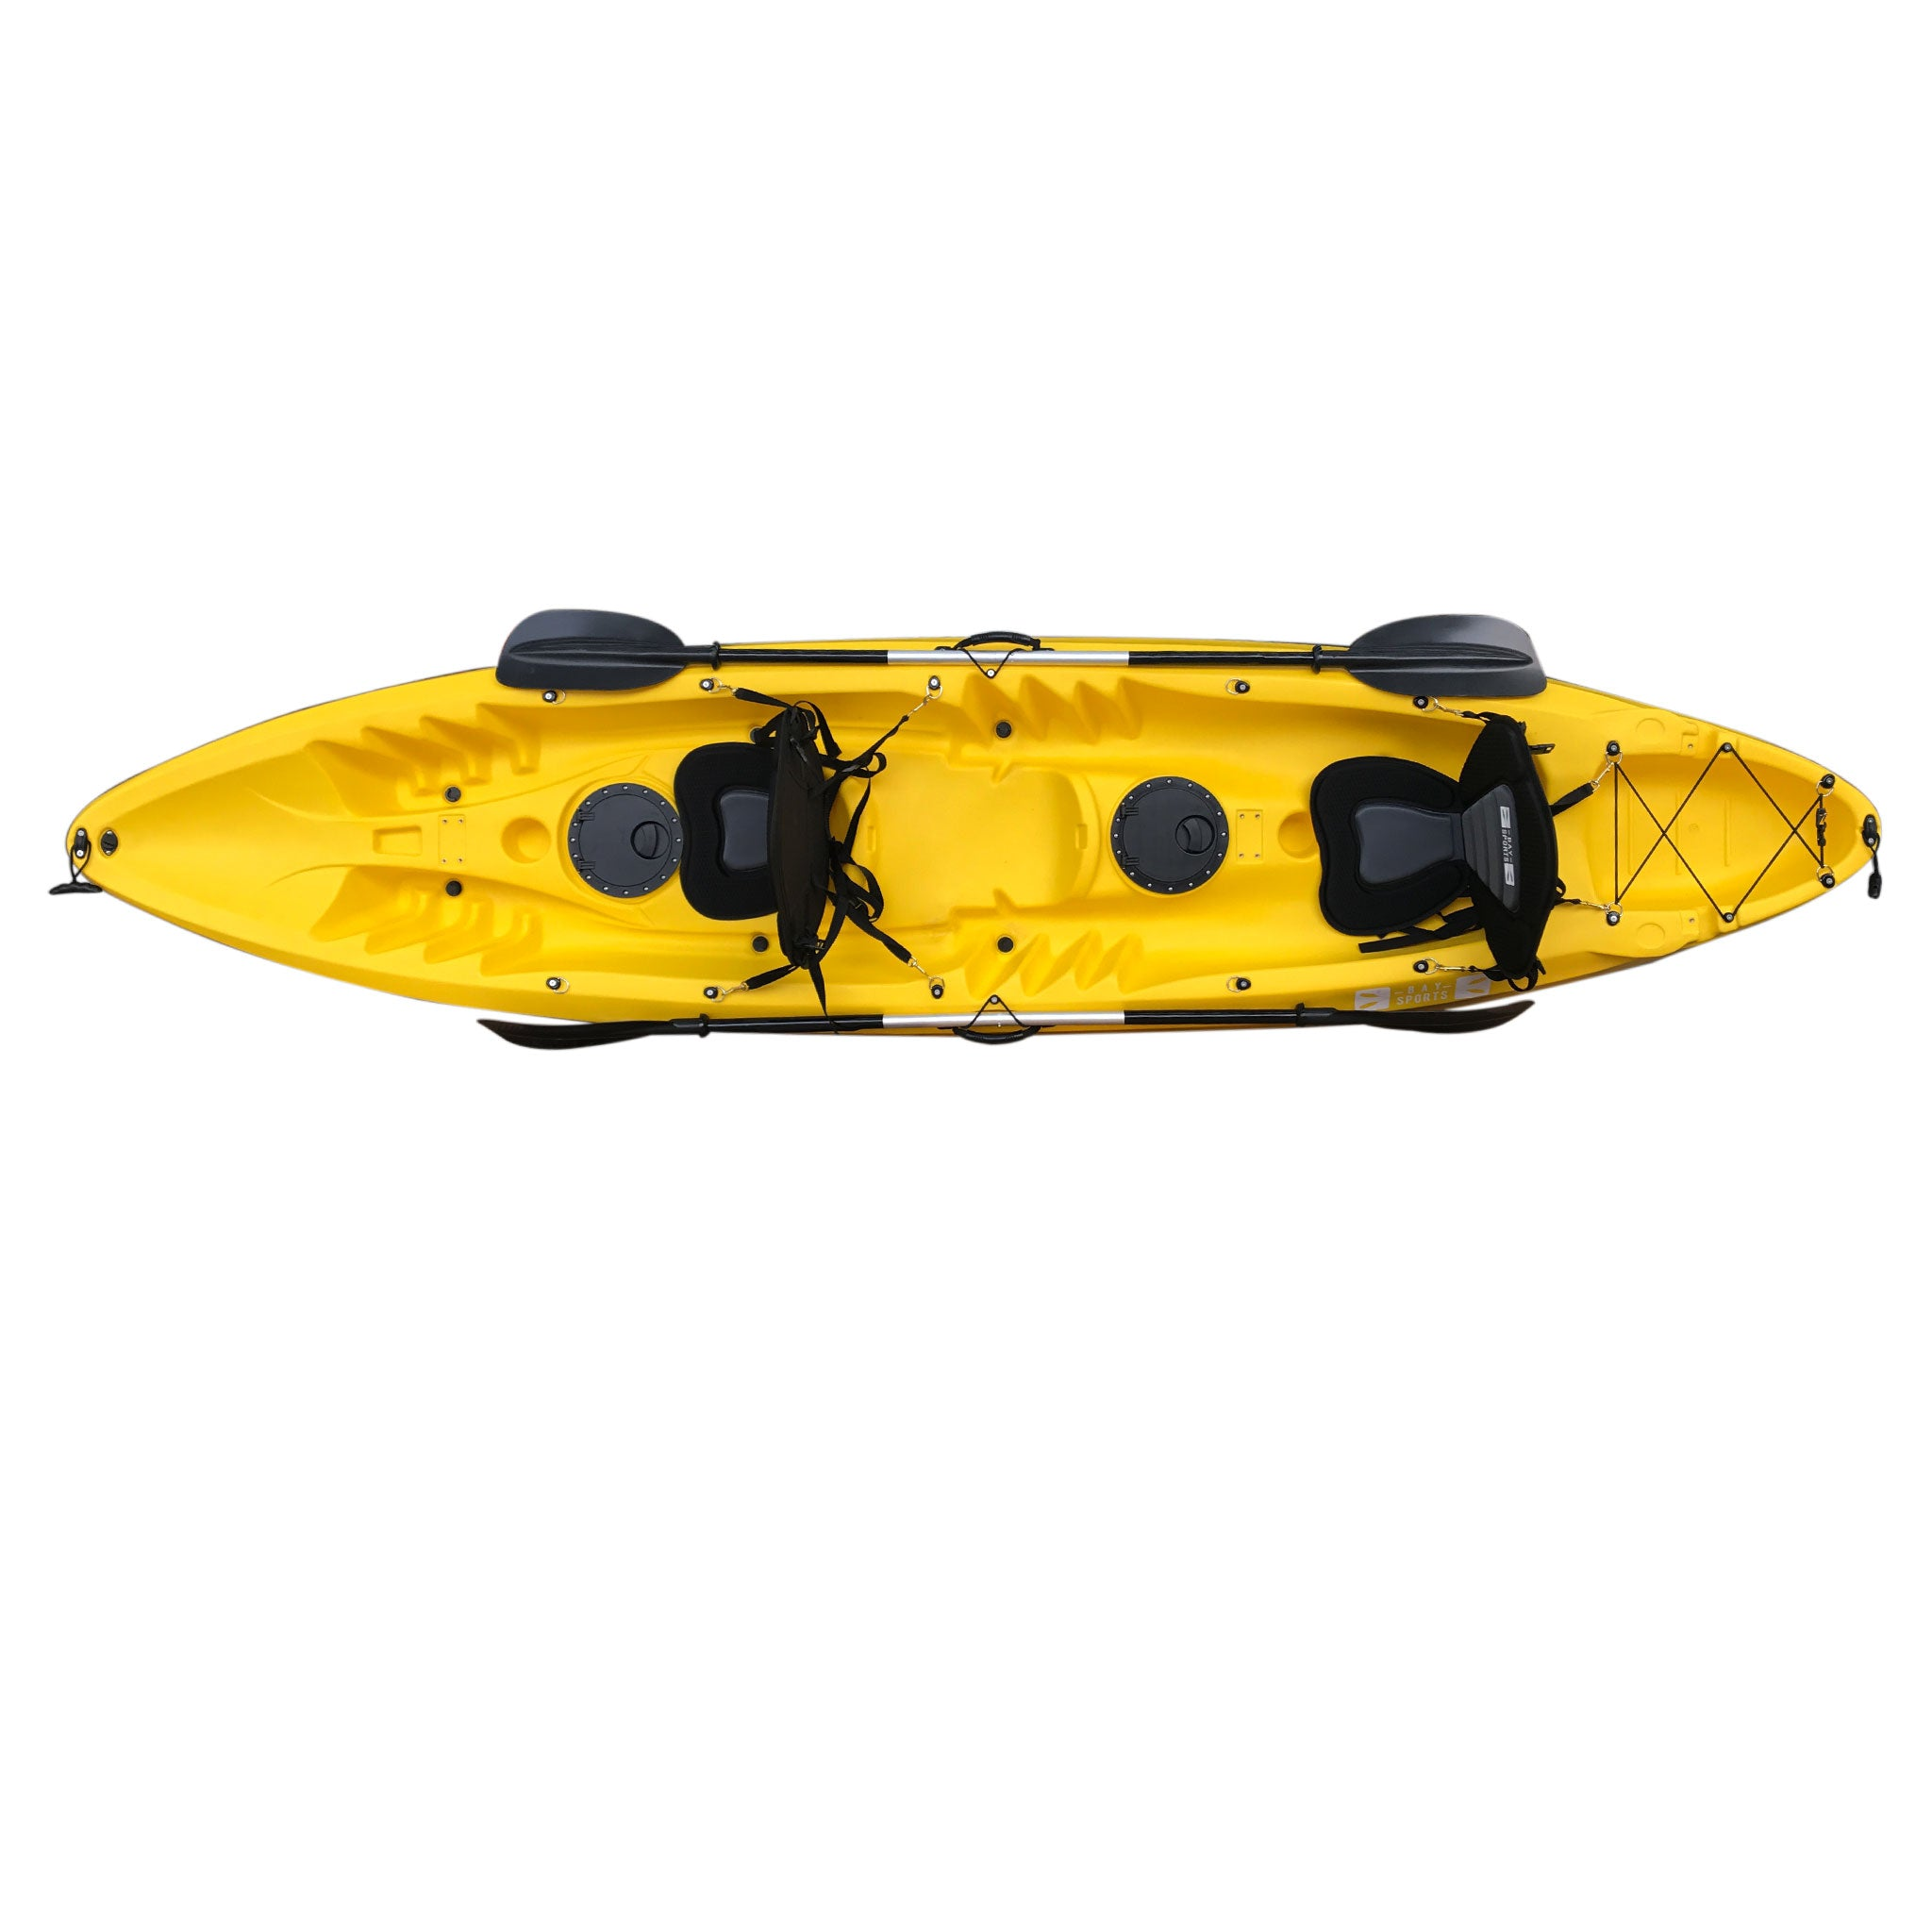 Bay Sports Nereus Yellow Tandem 2 Person Kayak Top View